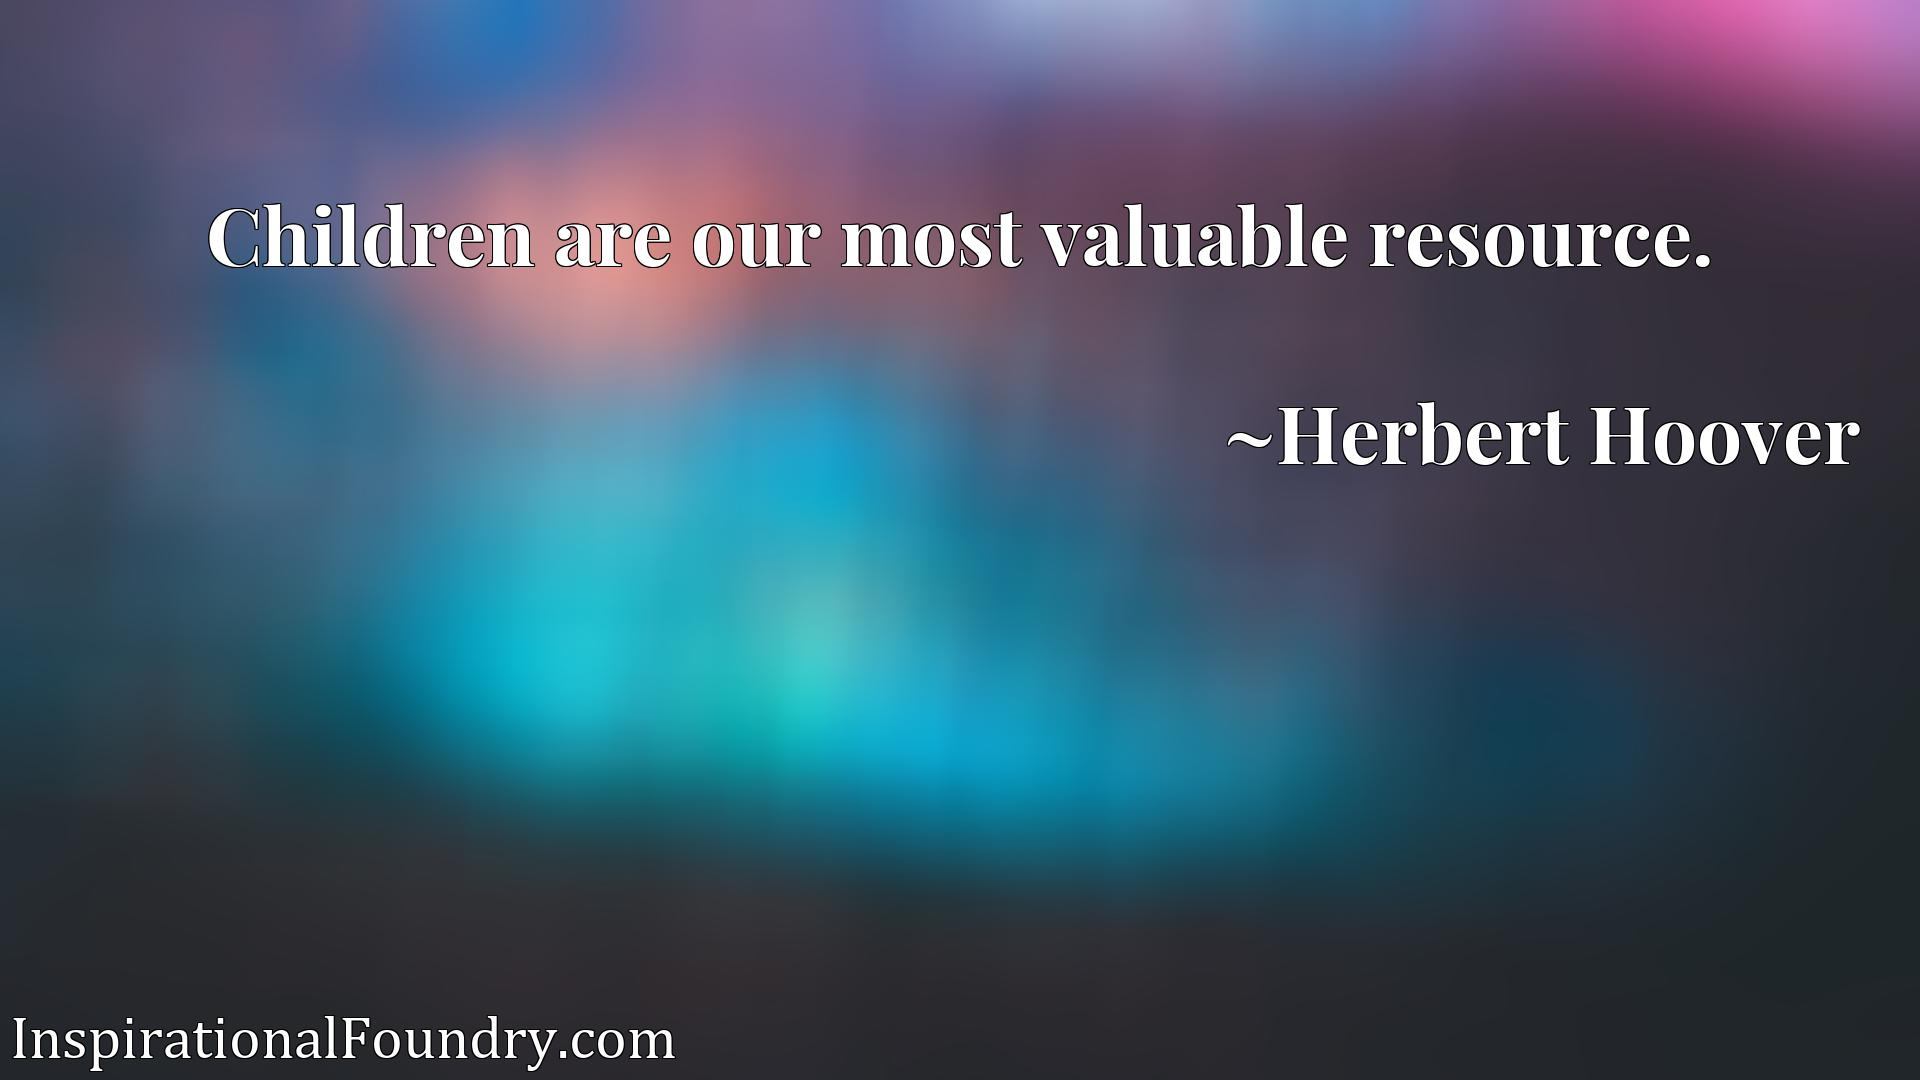 Children are our most valuable resource.